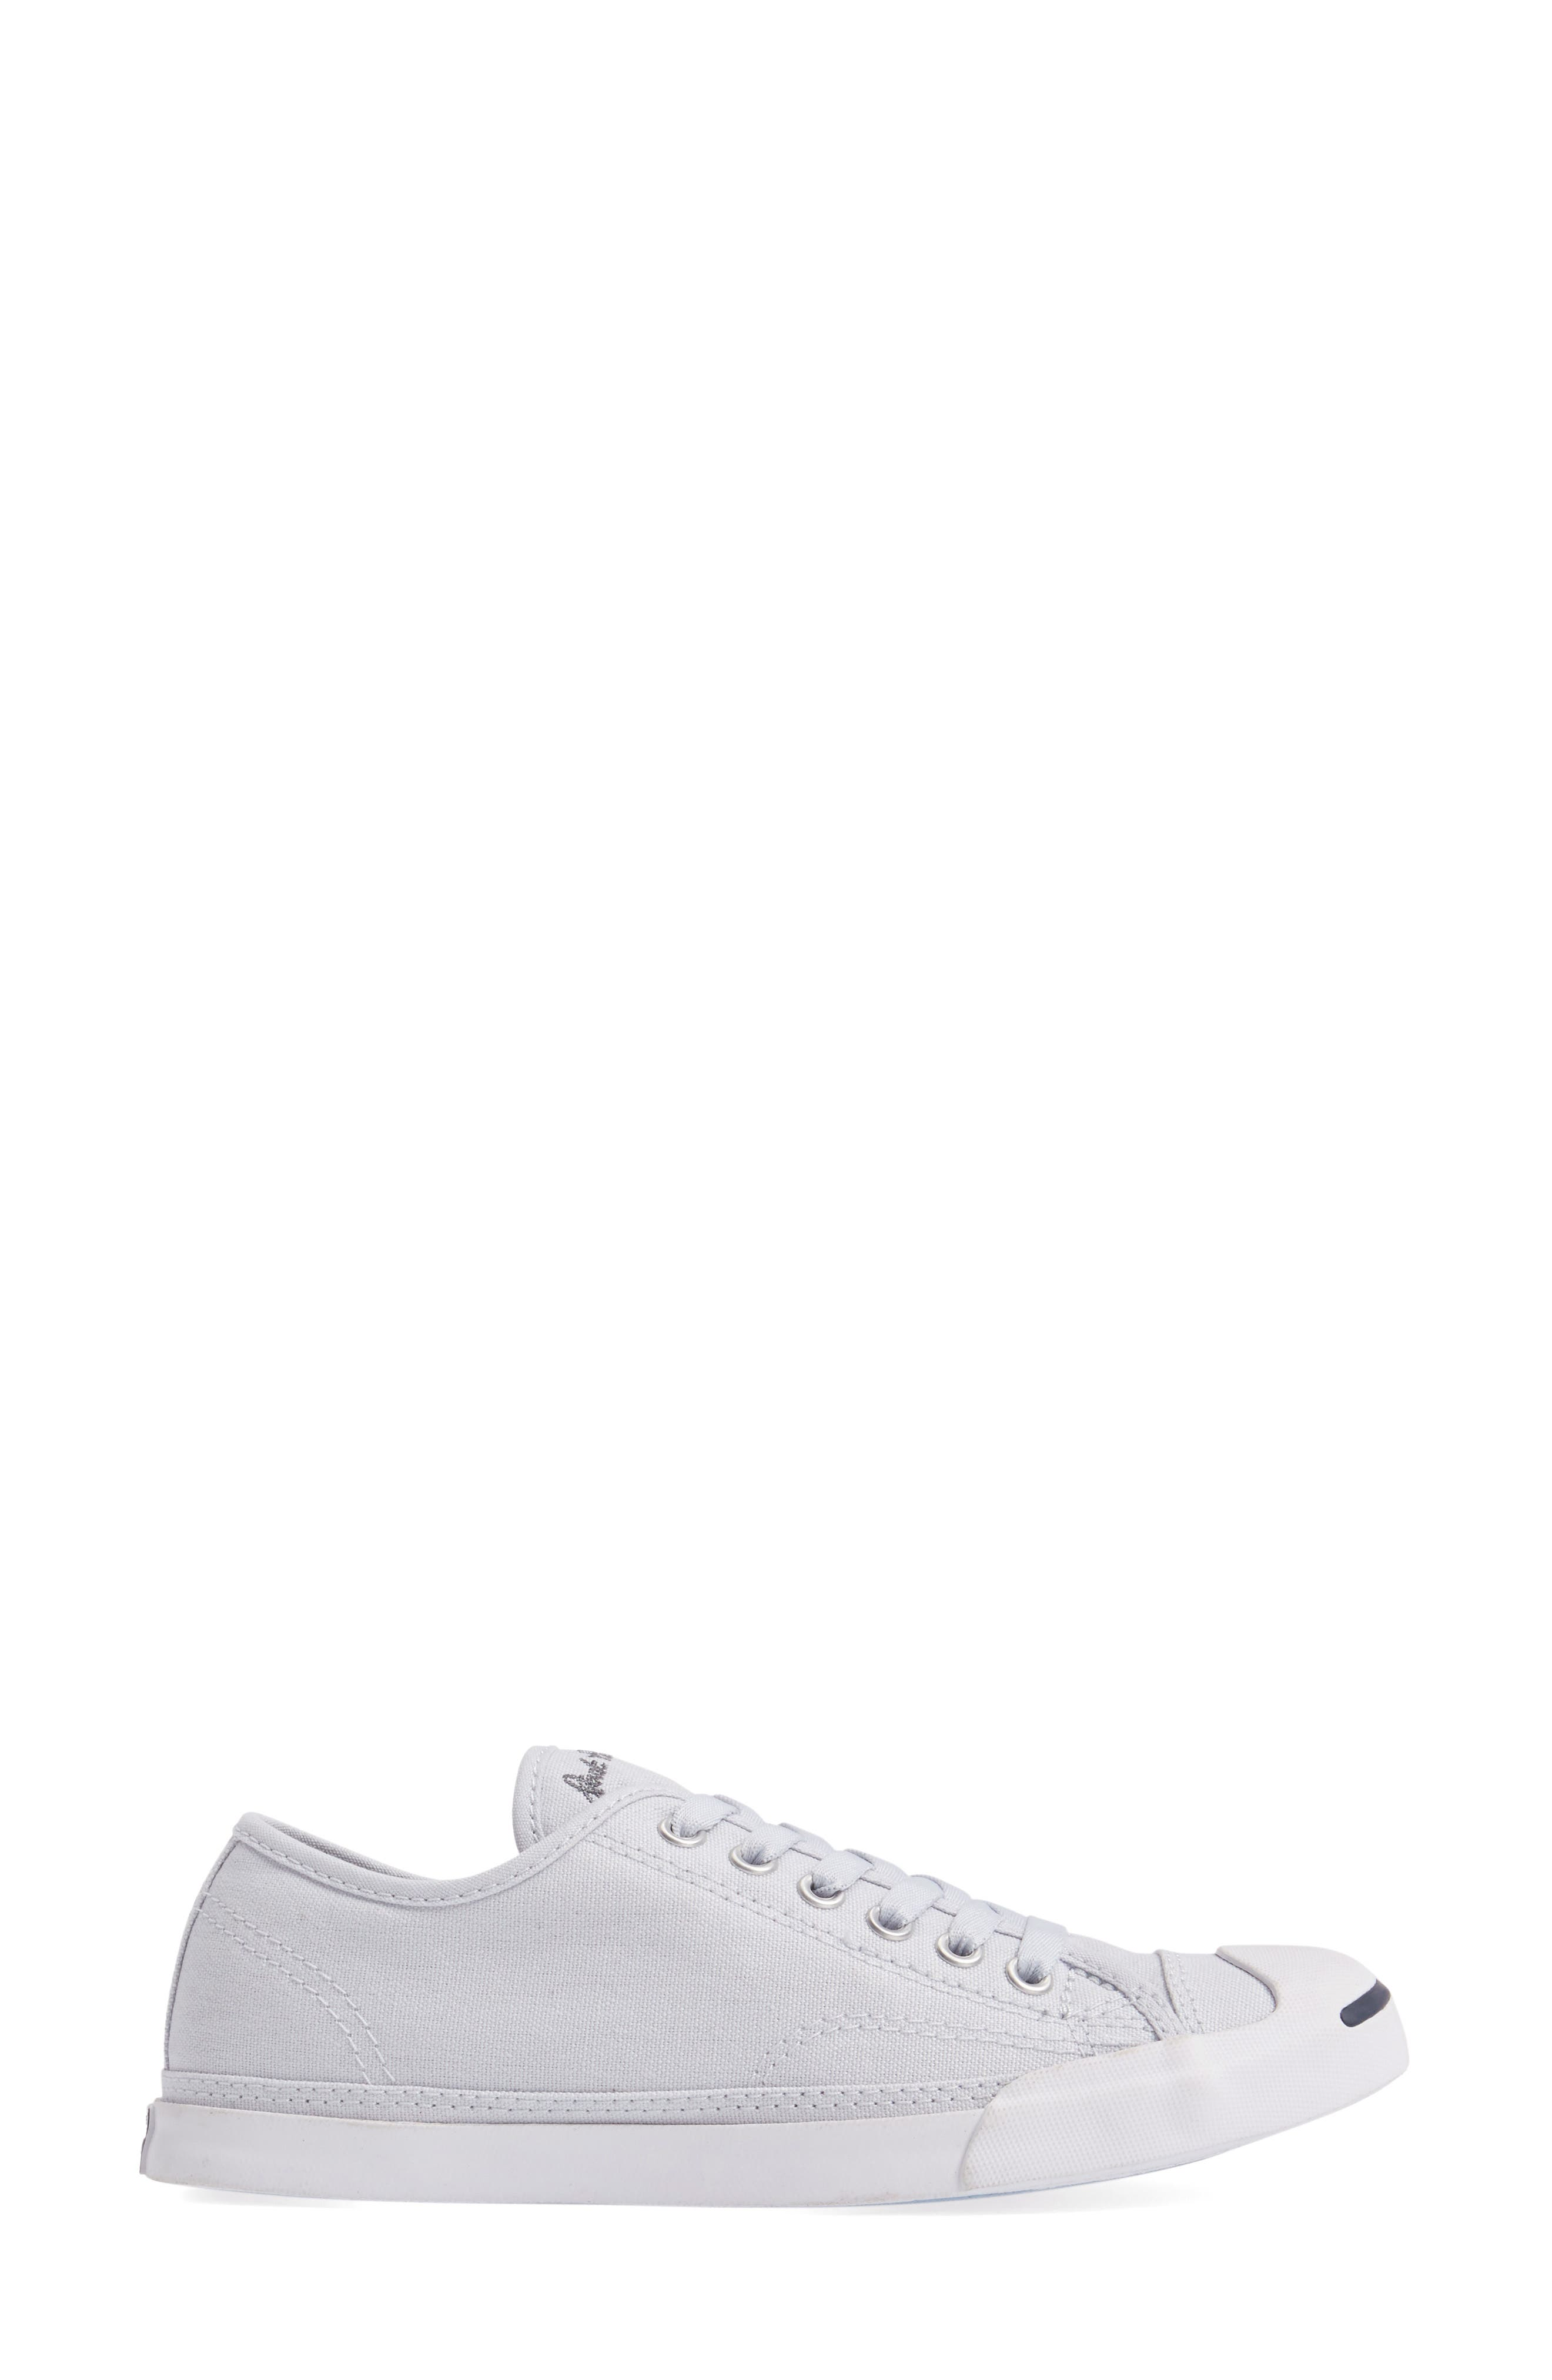 Jack Purcell Signature Ox Low Top Sneaker,                             Alternate thumbnail 3, color,